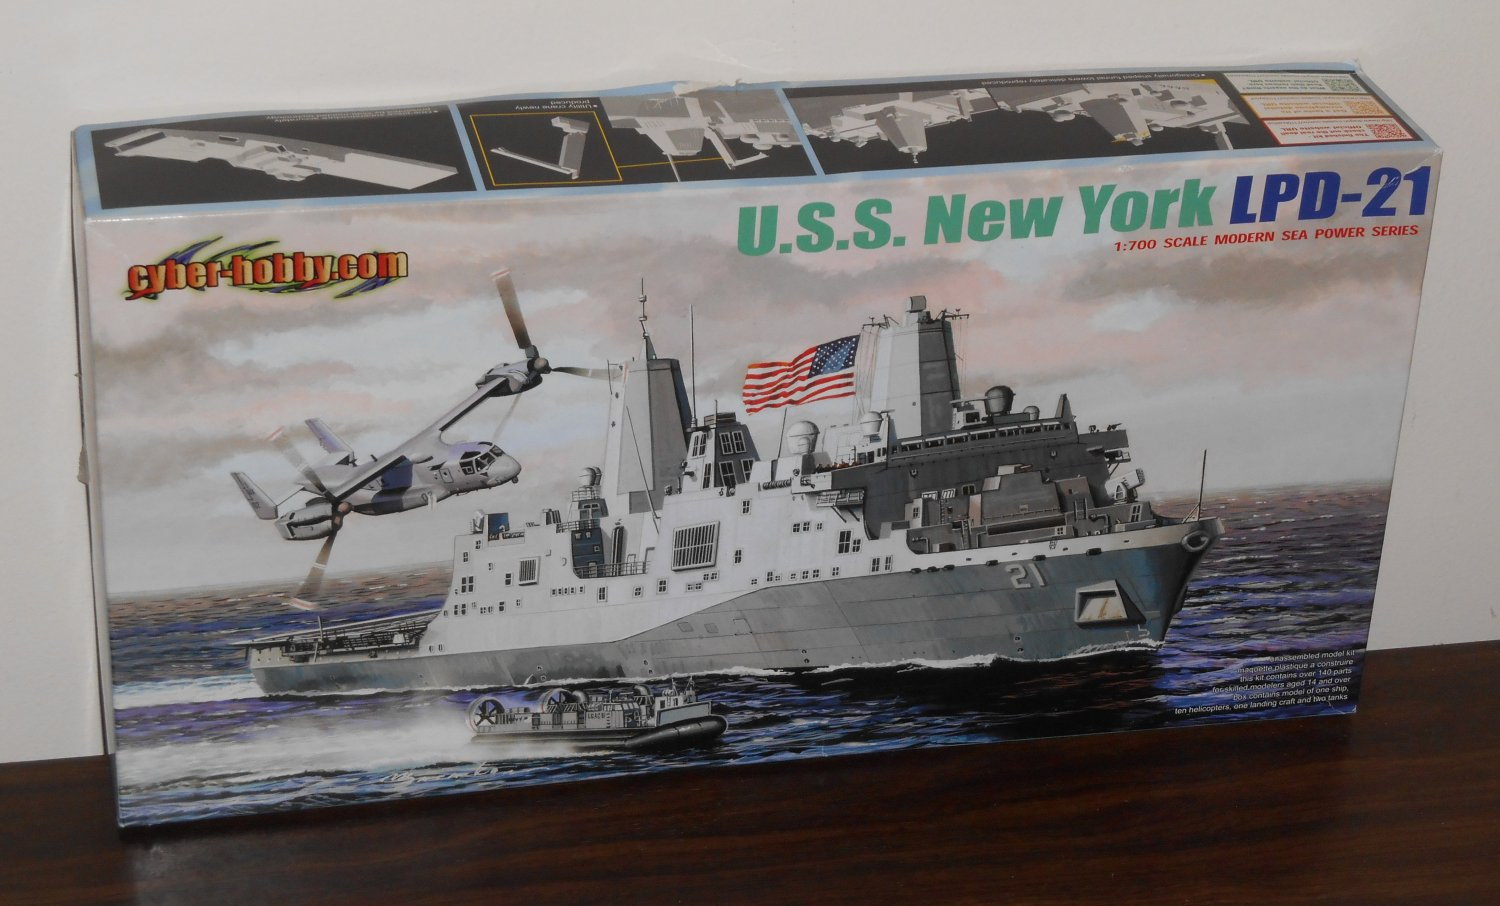 USS New York LPD-21 Ship Plastic Model Kit 7110 Dragon 1:700 Scale Modern Sea Power Series NIB